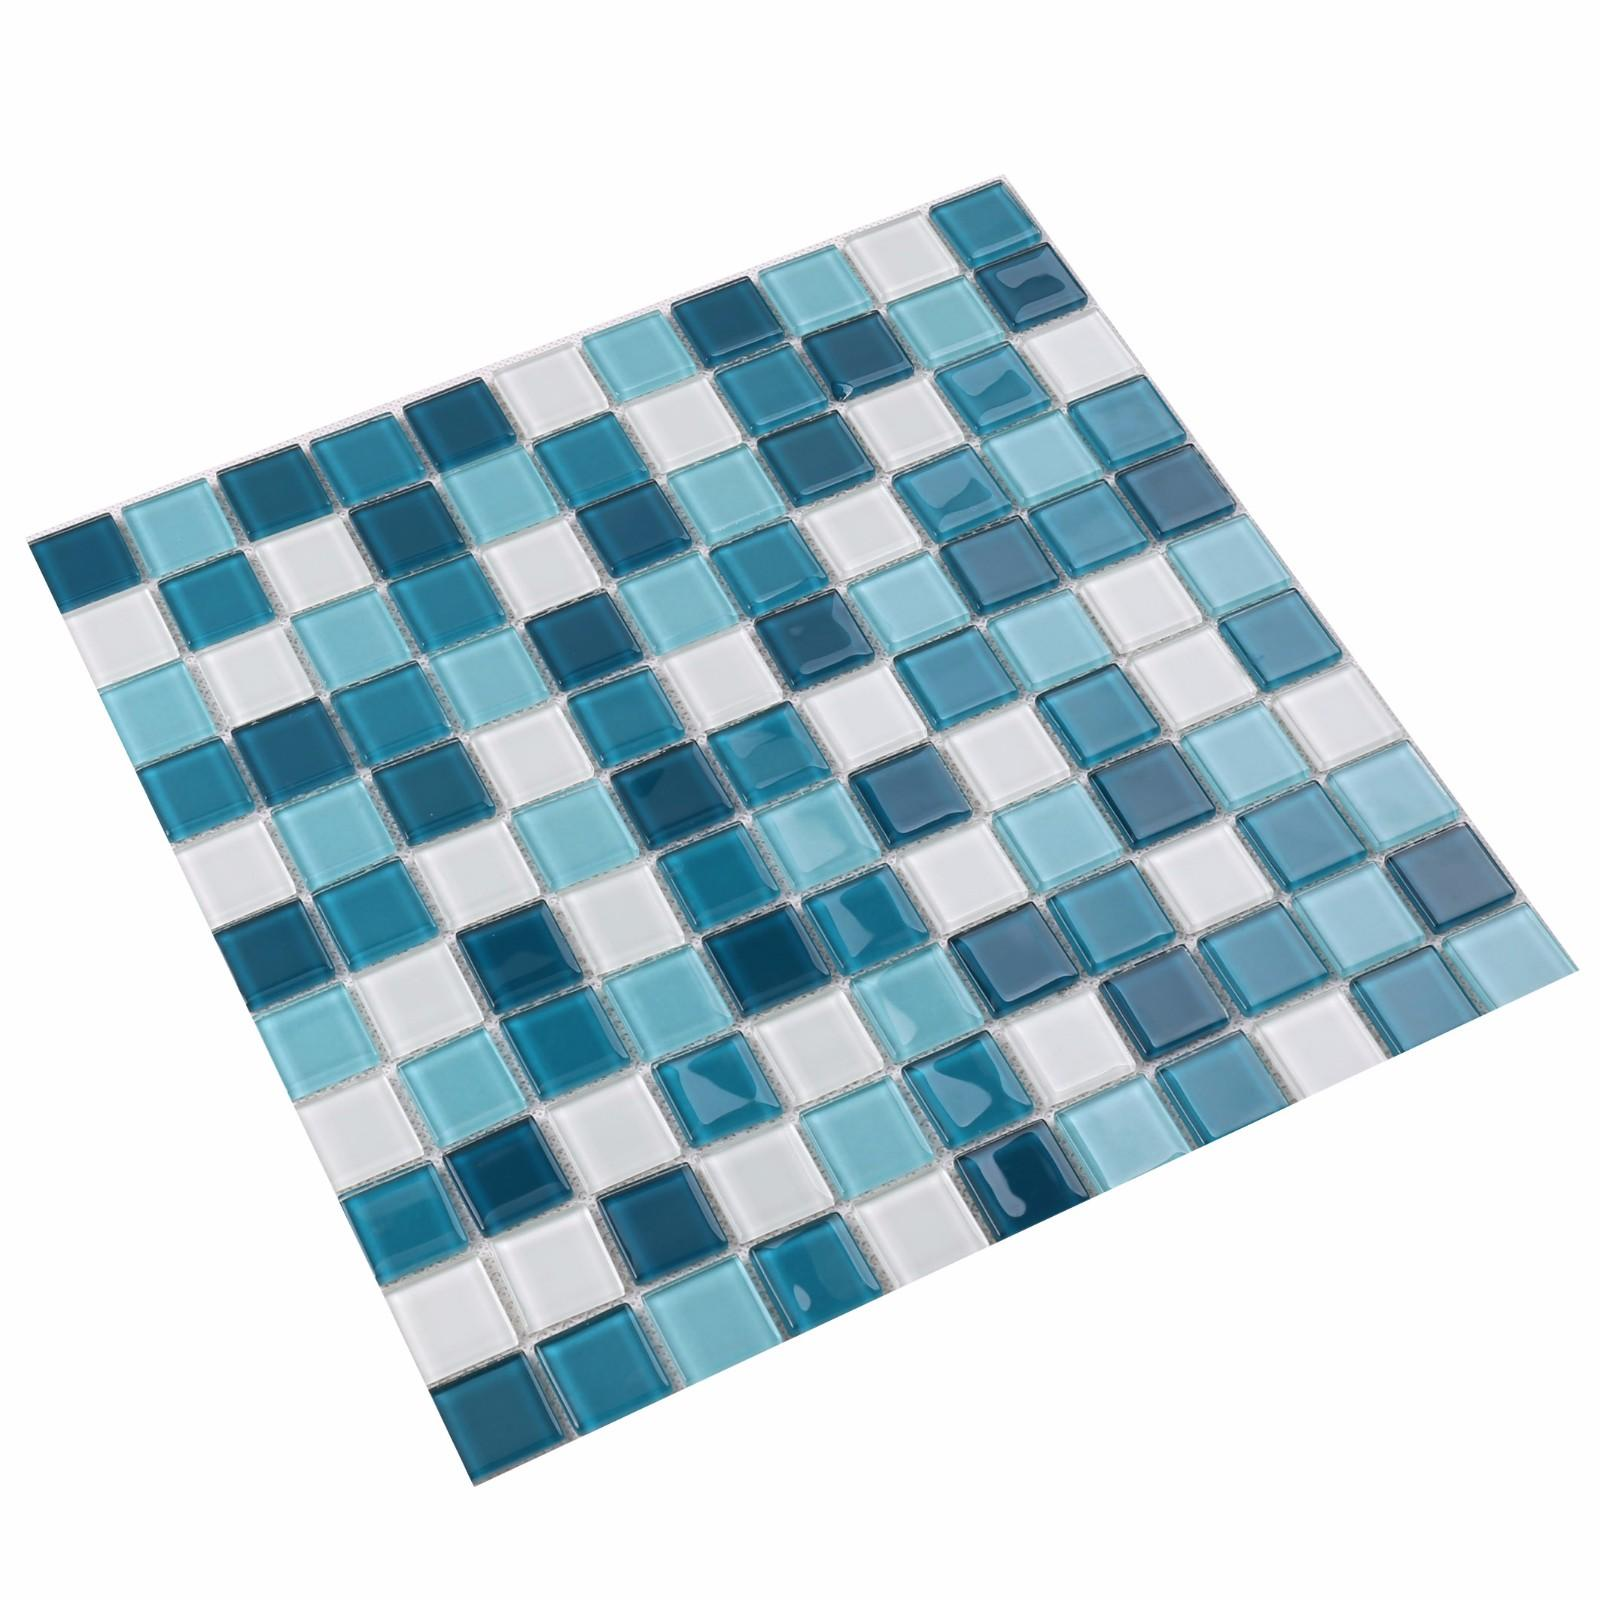 Heng Xing waterline glass pool tile supplier for fountain-3